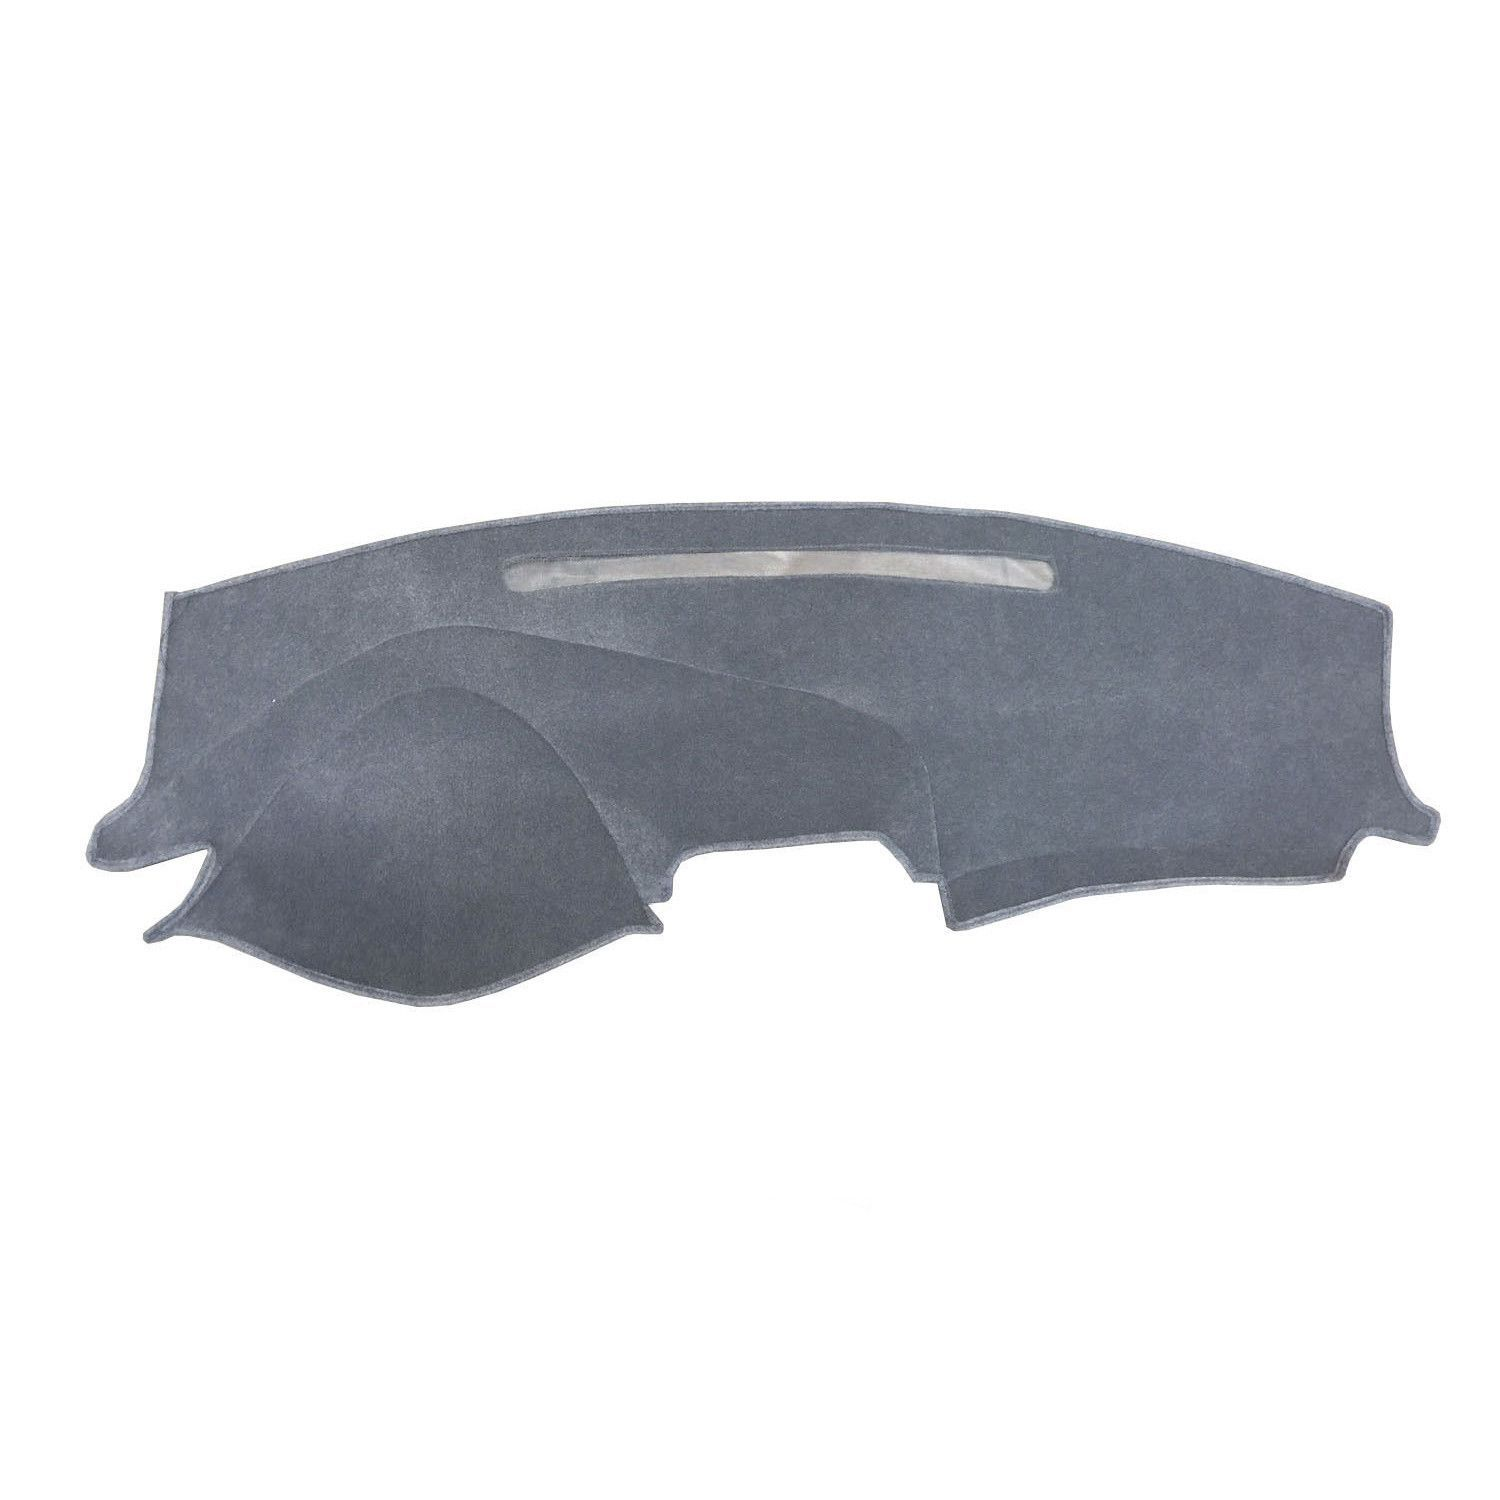 Carpet Dashboard Cover For 2007-2008 Acura TL Mat Pad